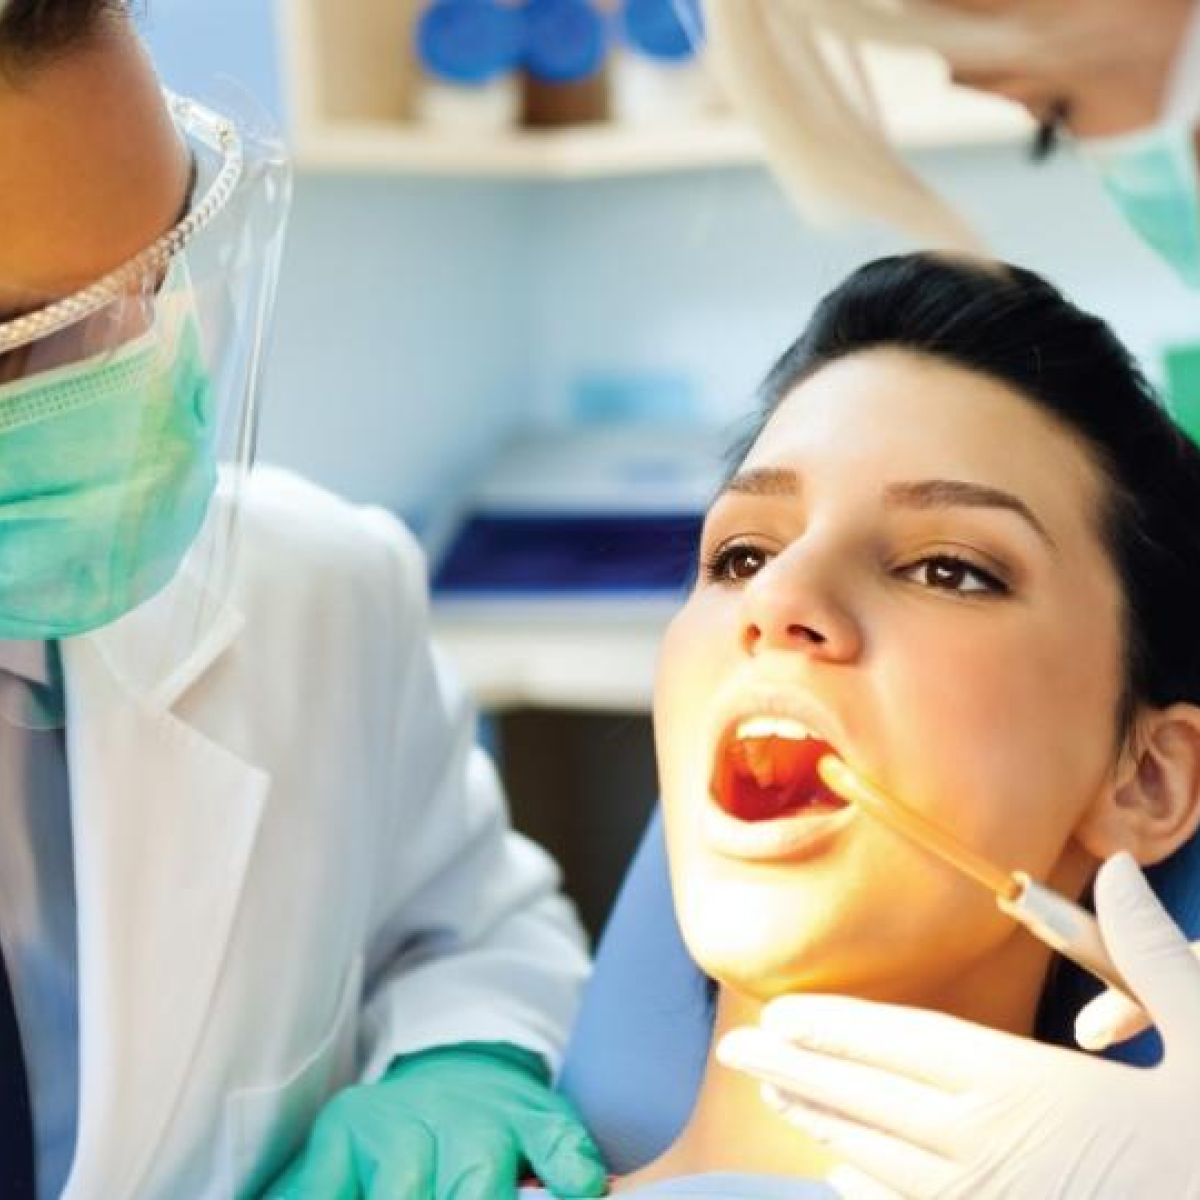 Dental cover cuts have hurt but there are still some things